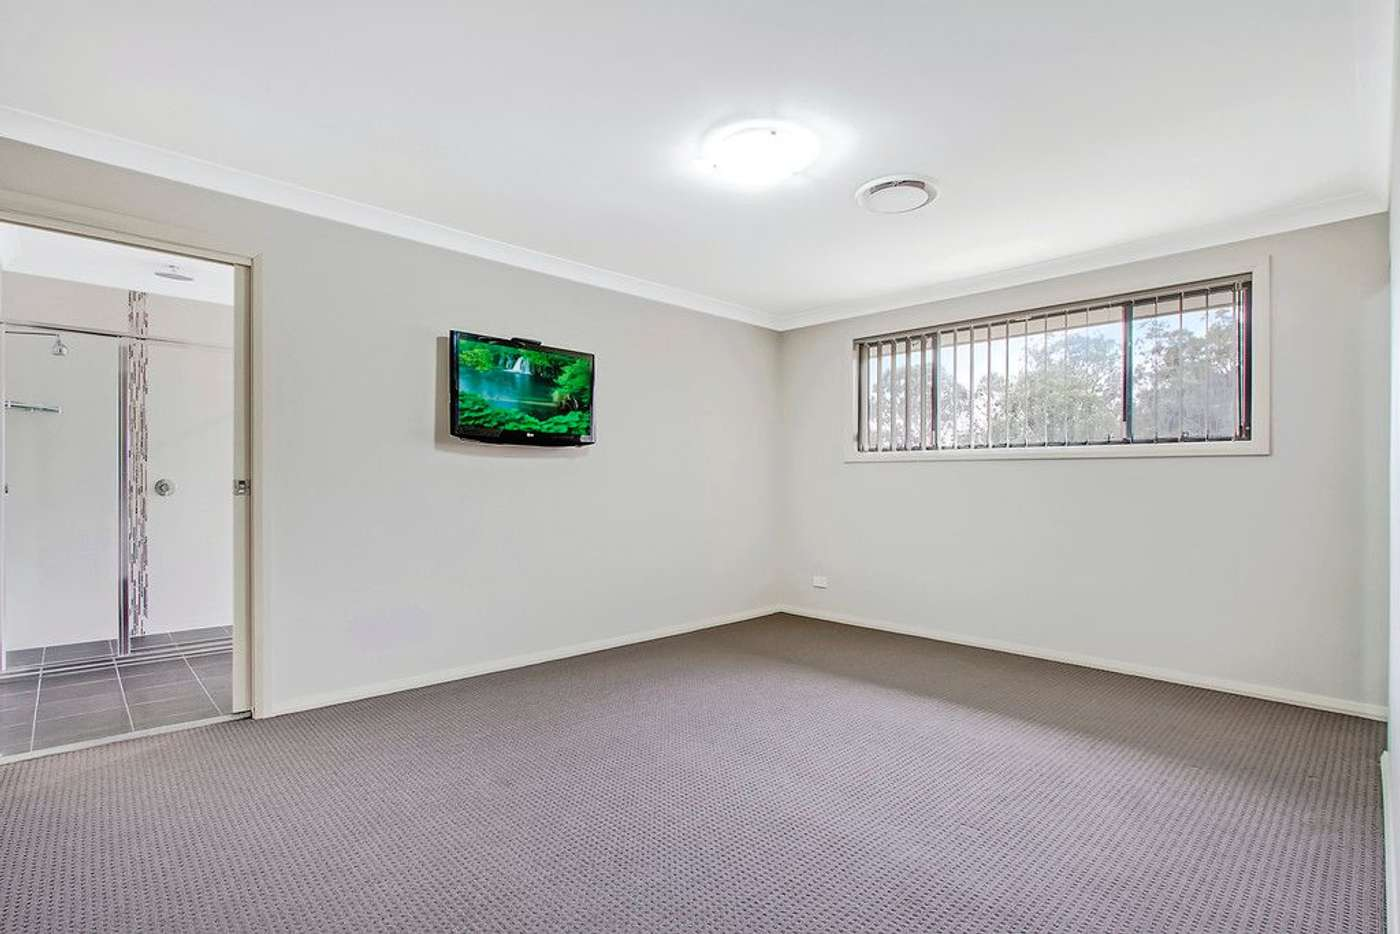 Fifth view of Homely house listing, 36 Reuben Street, Riverstone NSW 2765